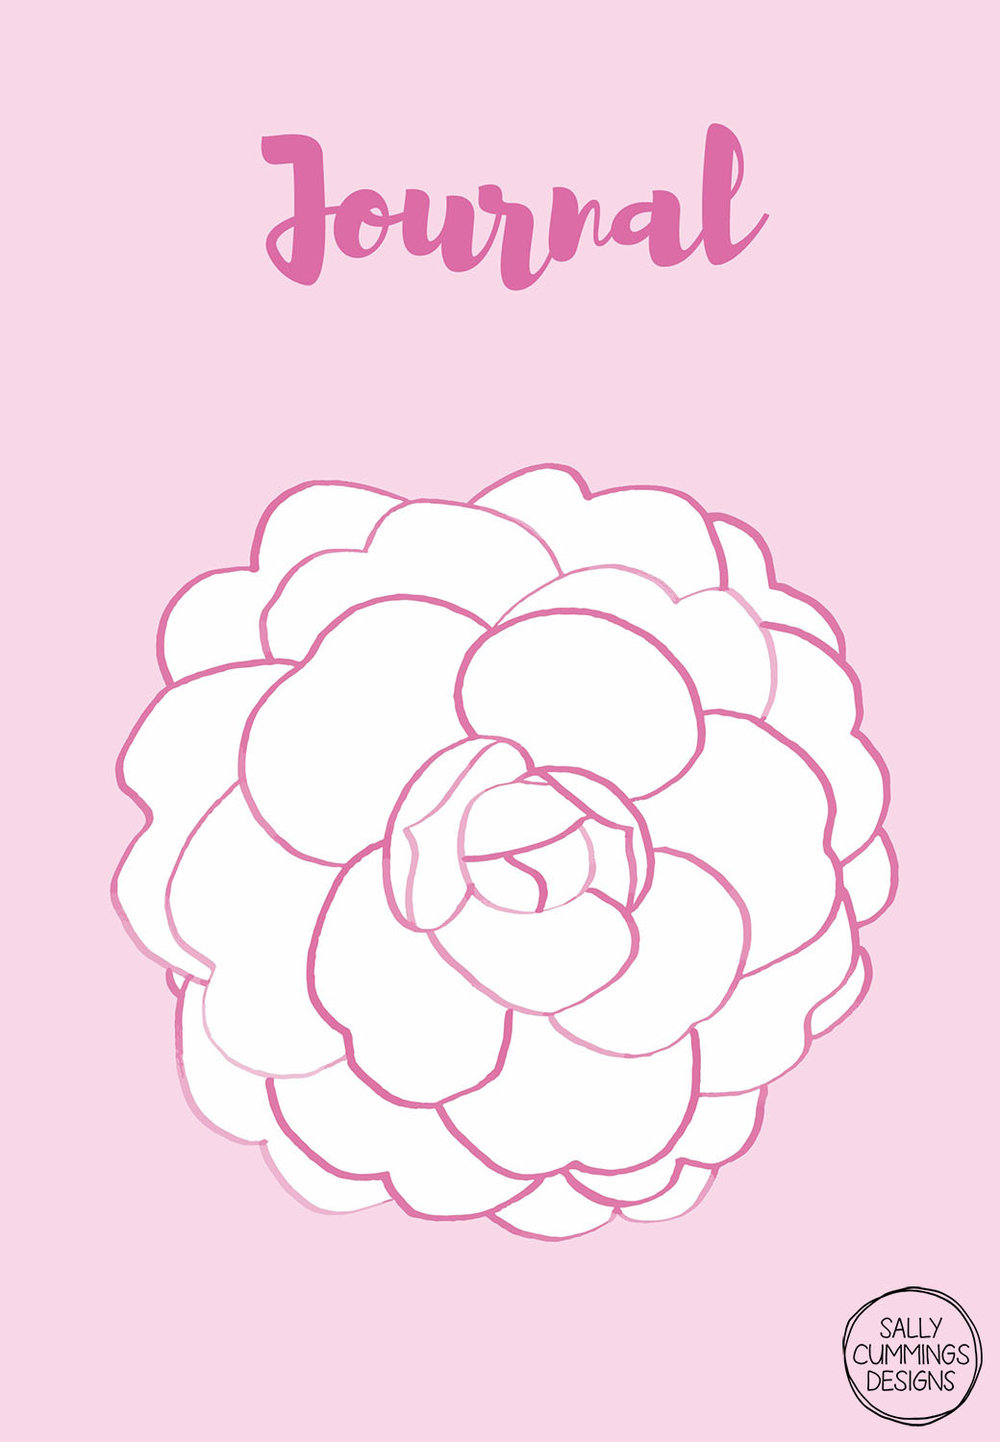 Sally Cummings Designs - Pink camellia journal cover design